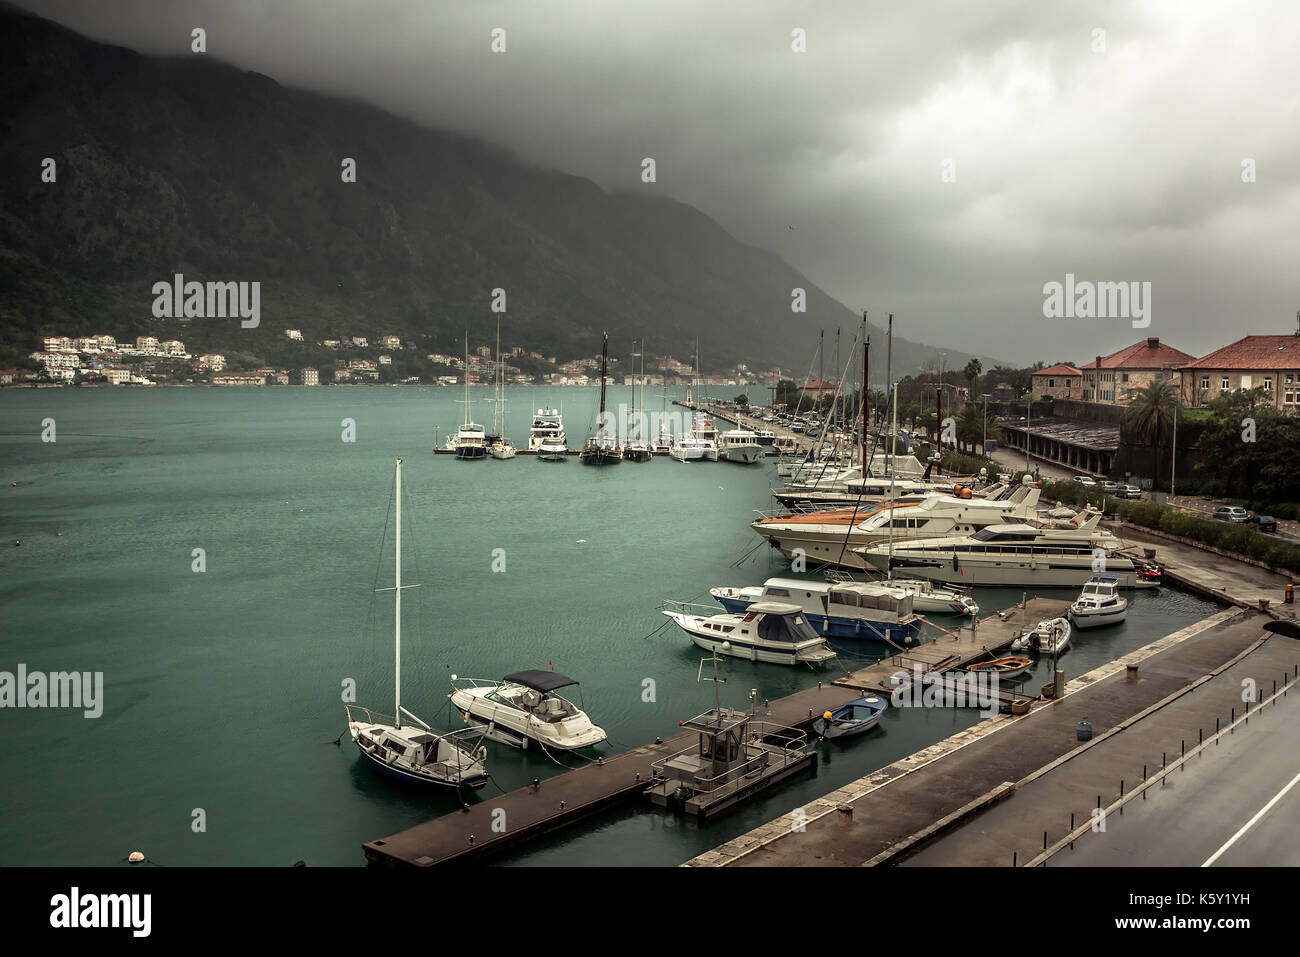 Marine sea port with moored  luxury yachts and boats in medieval Kotor bay in Montenegro in overcast rainy autumn day - Stock Image